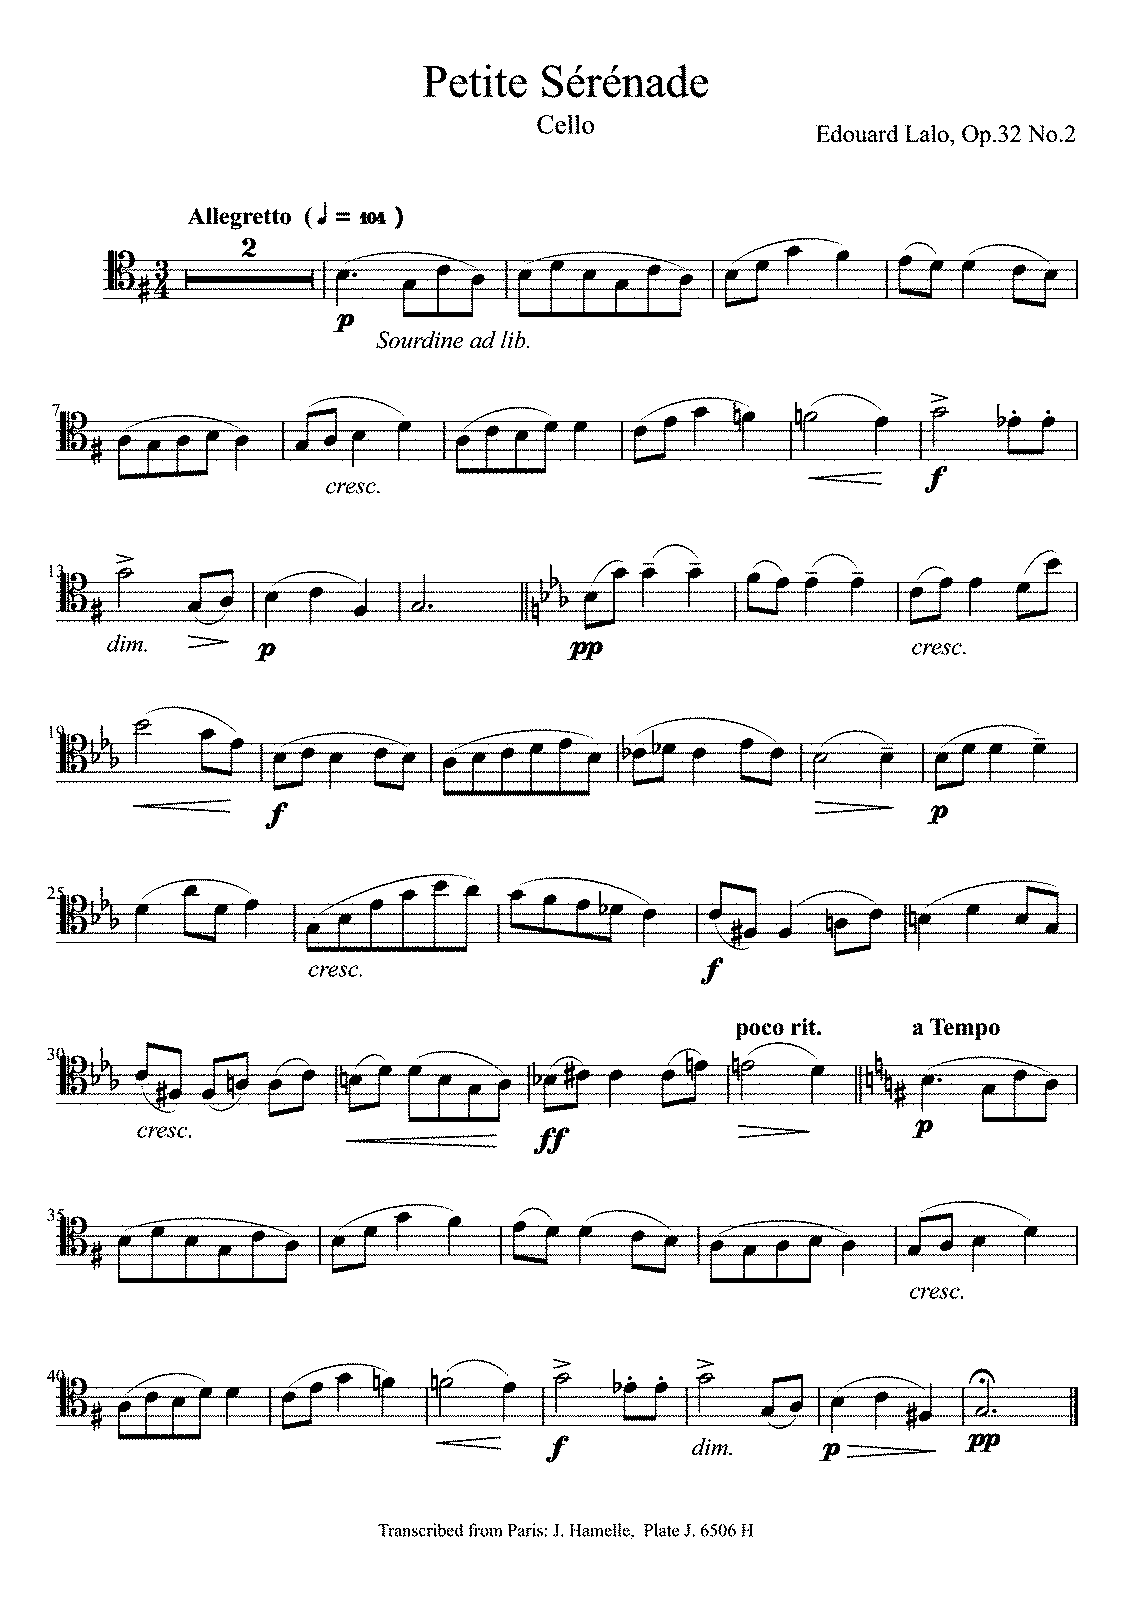 PMLP50216-Lalo Petite Serenade Op32No2 Cello.pdf